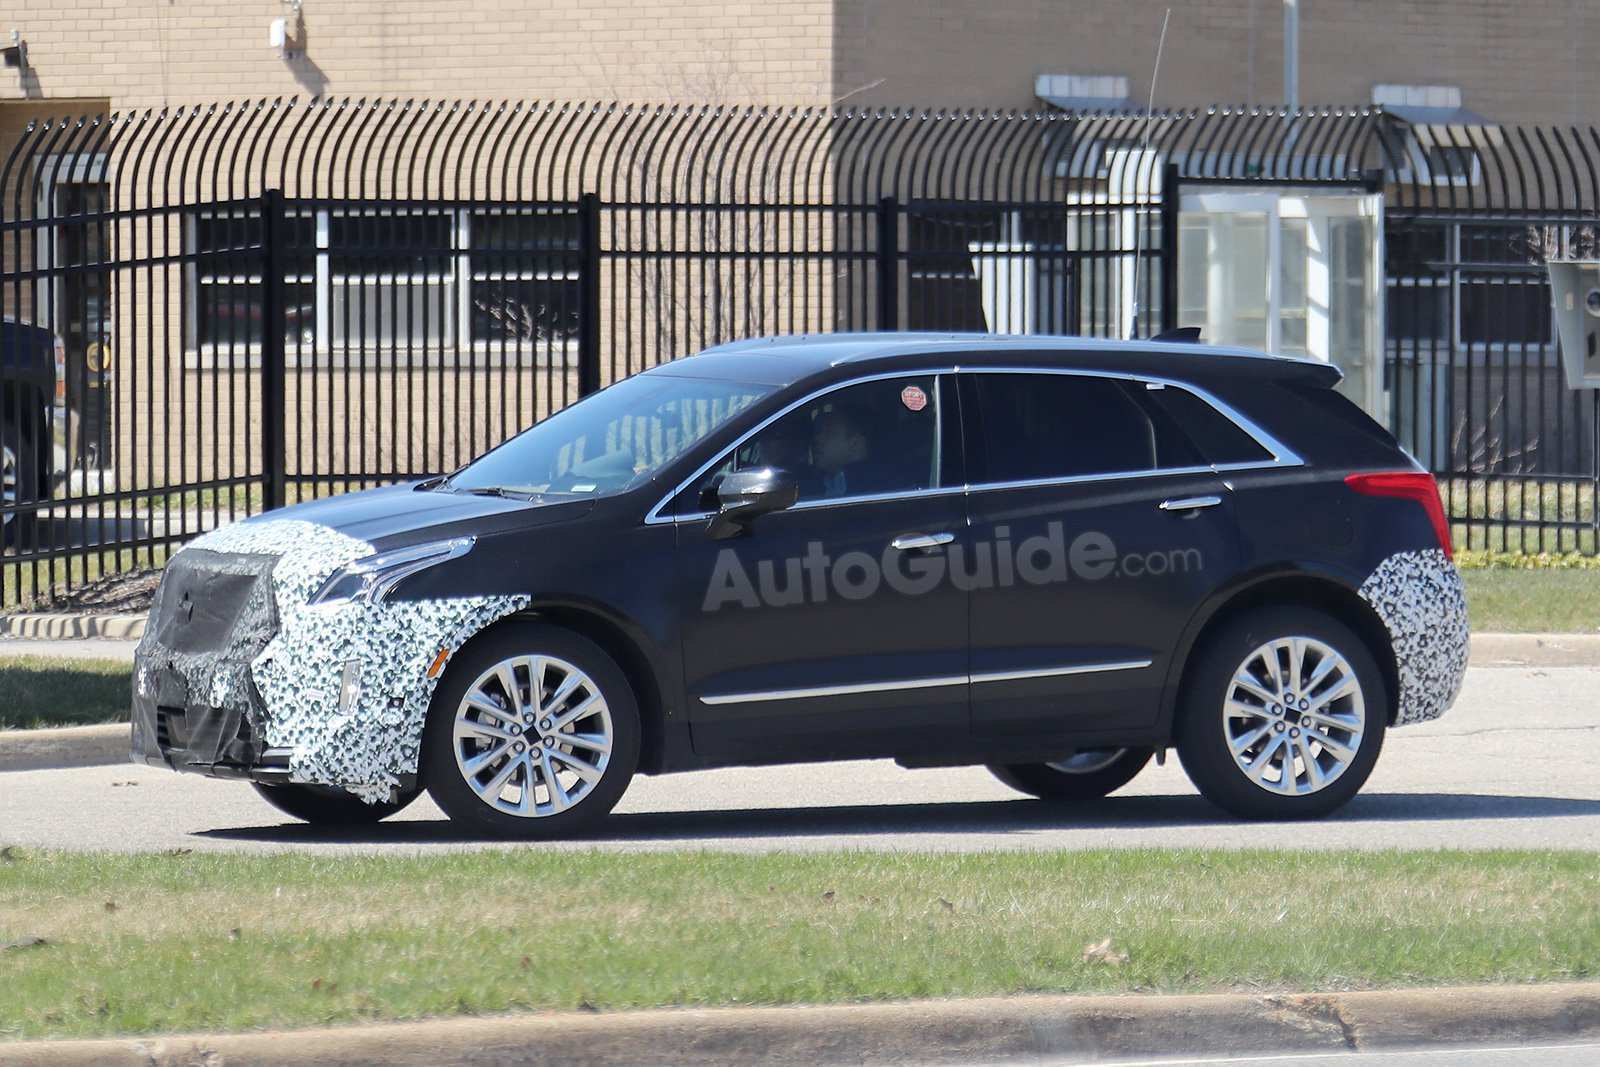 21 A 2019 Spy Shots Cadillac Xt5 Release Date